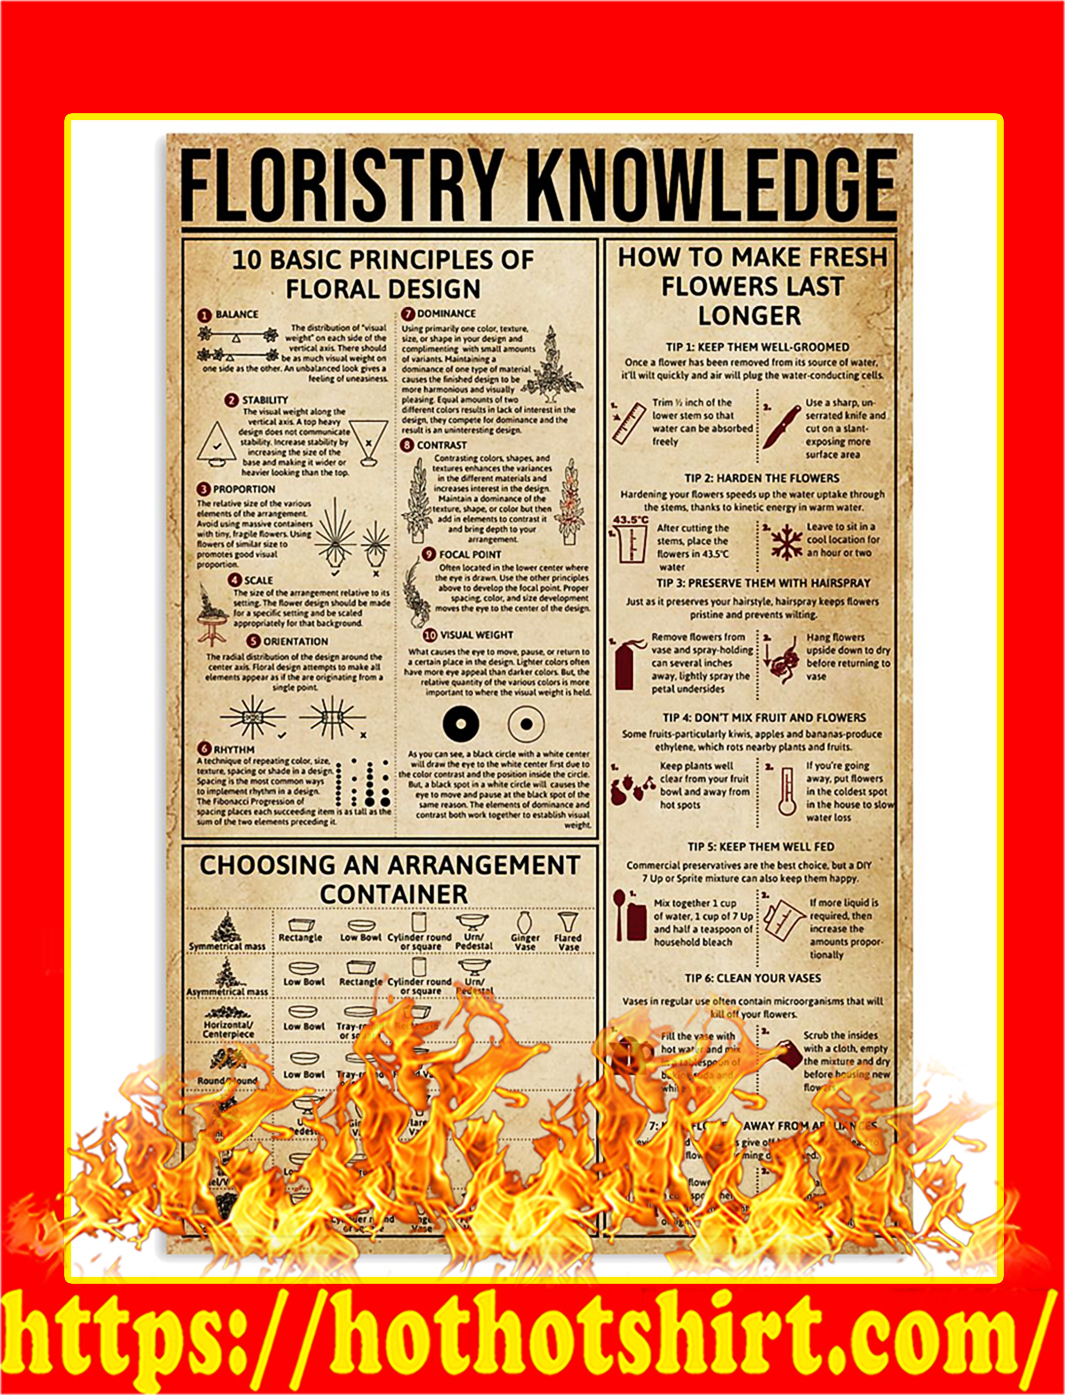 Floristry Knowledge Poster - A3